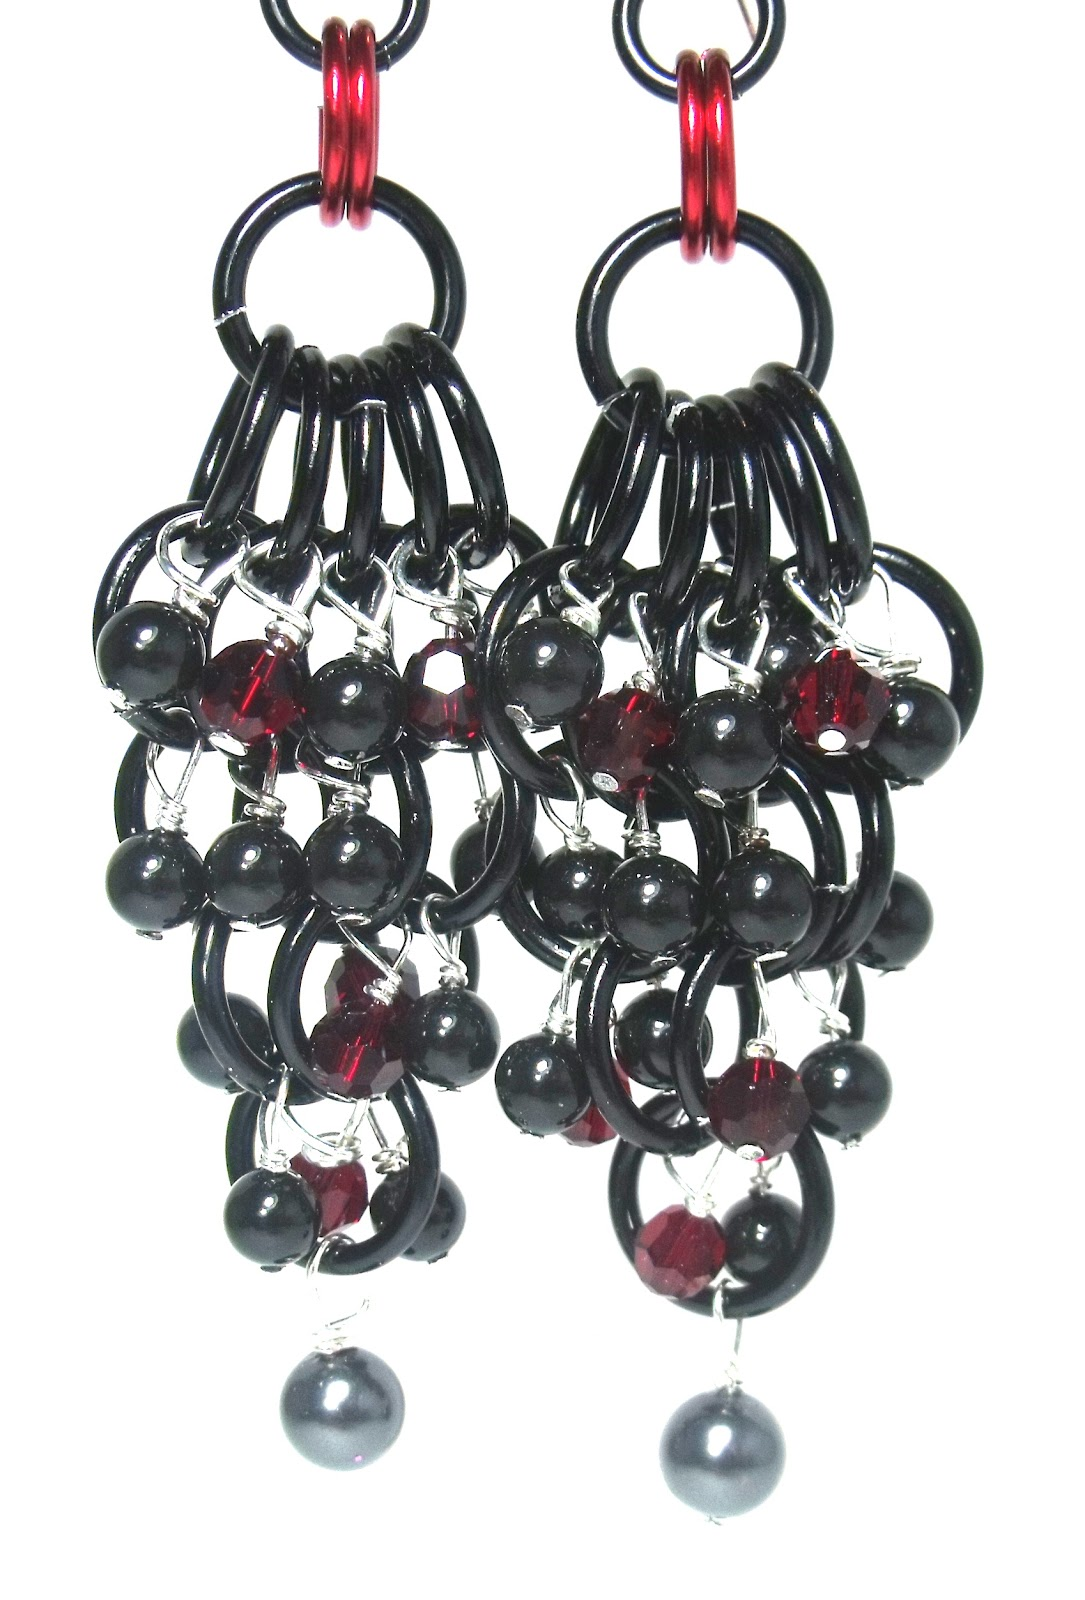 http://2.bp.blogspot.com/-MC7NehbkqYQ/T_NeV6pXs3I/AAAAAAAABtc/aCG2kqCItrk/s1600/earrings1.jpg